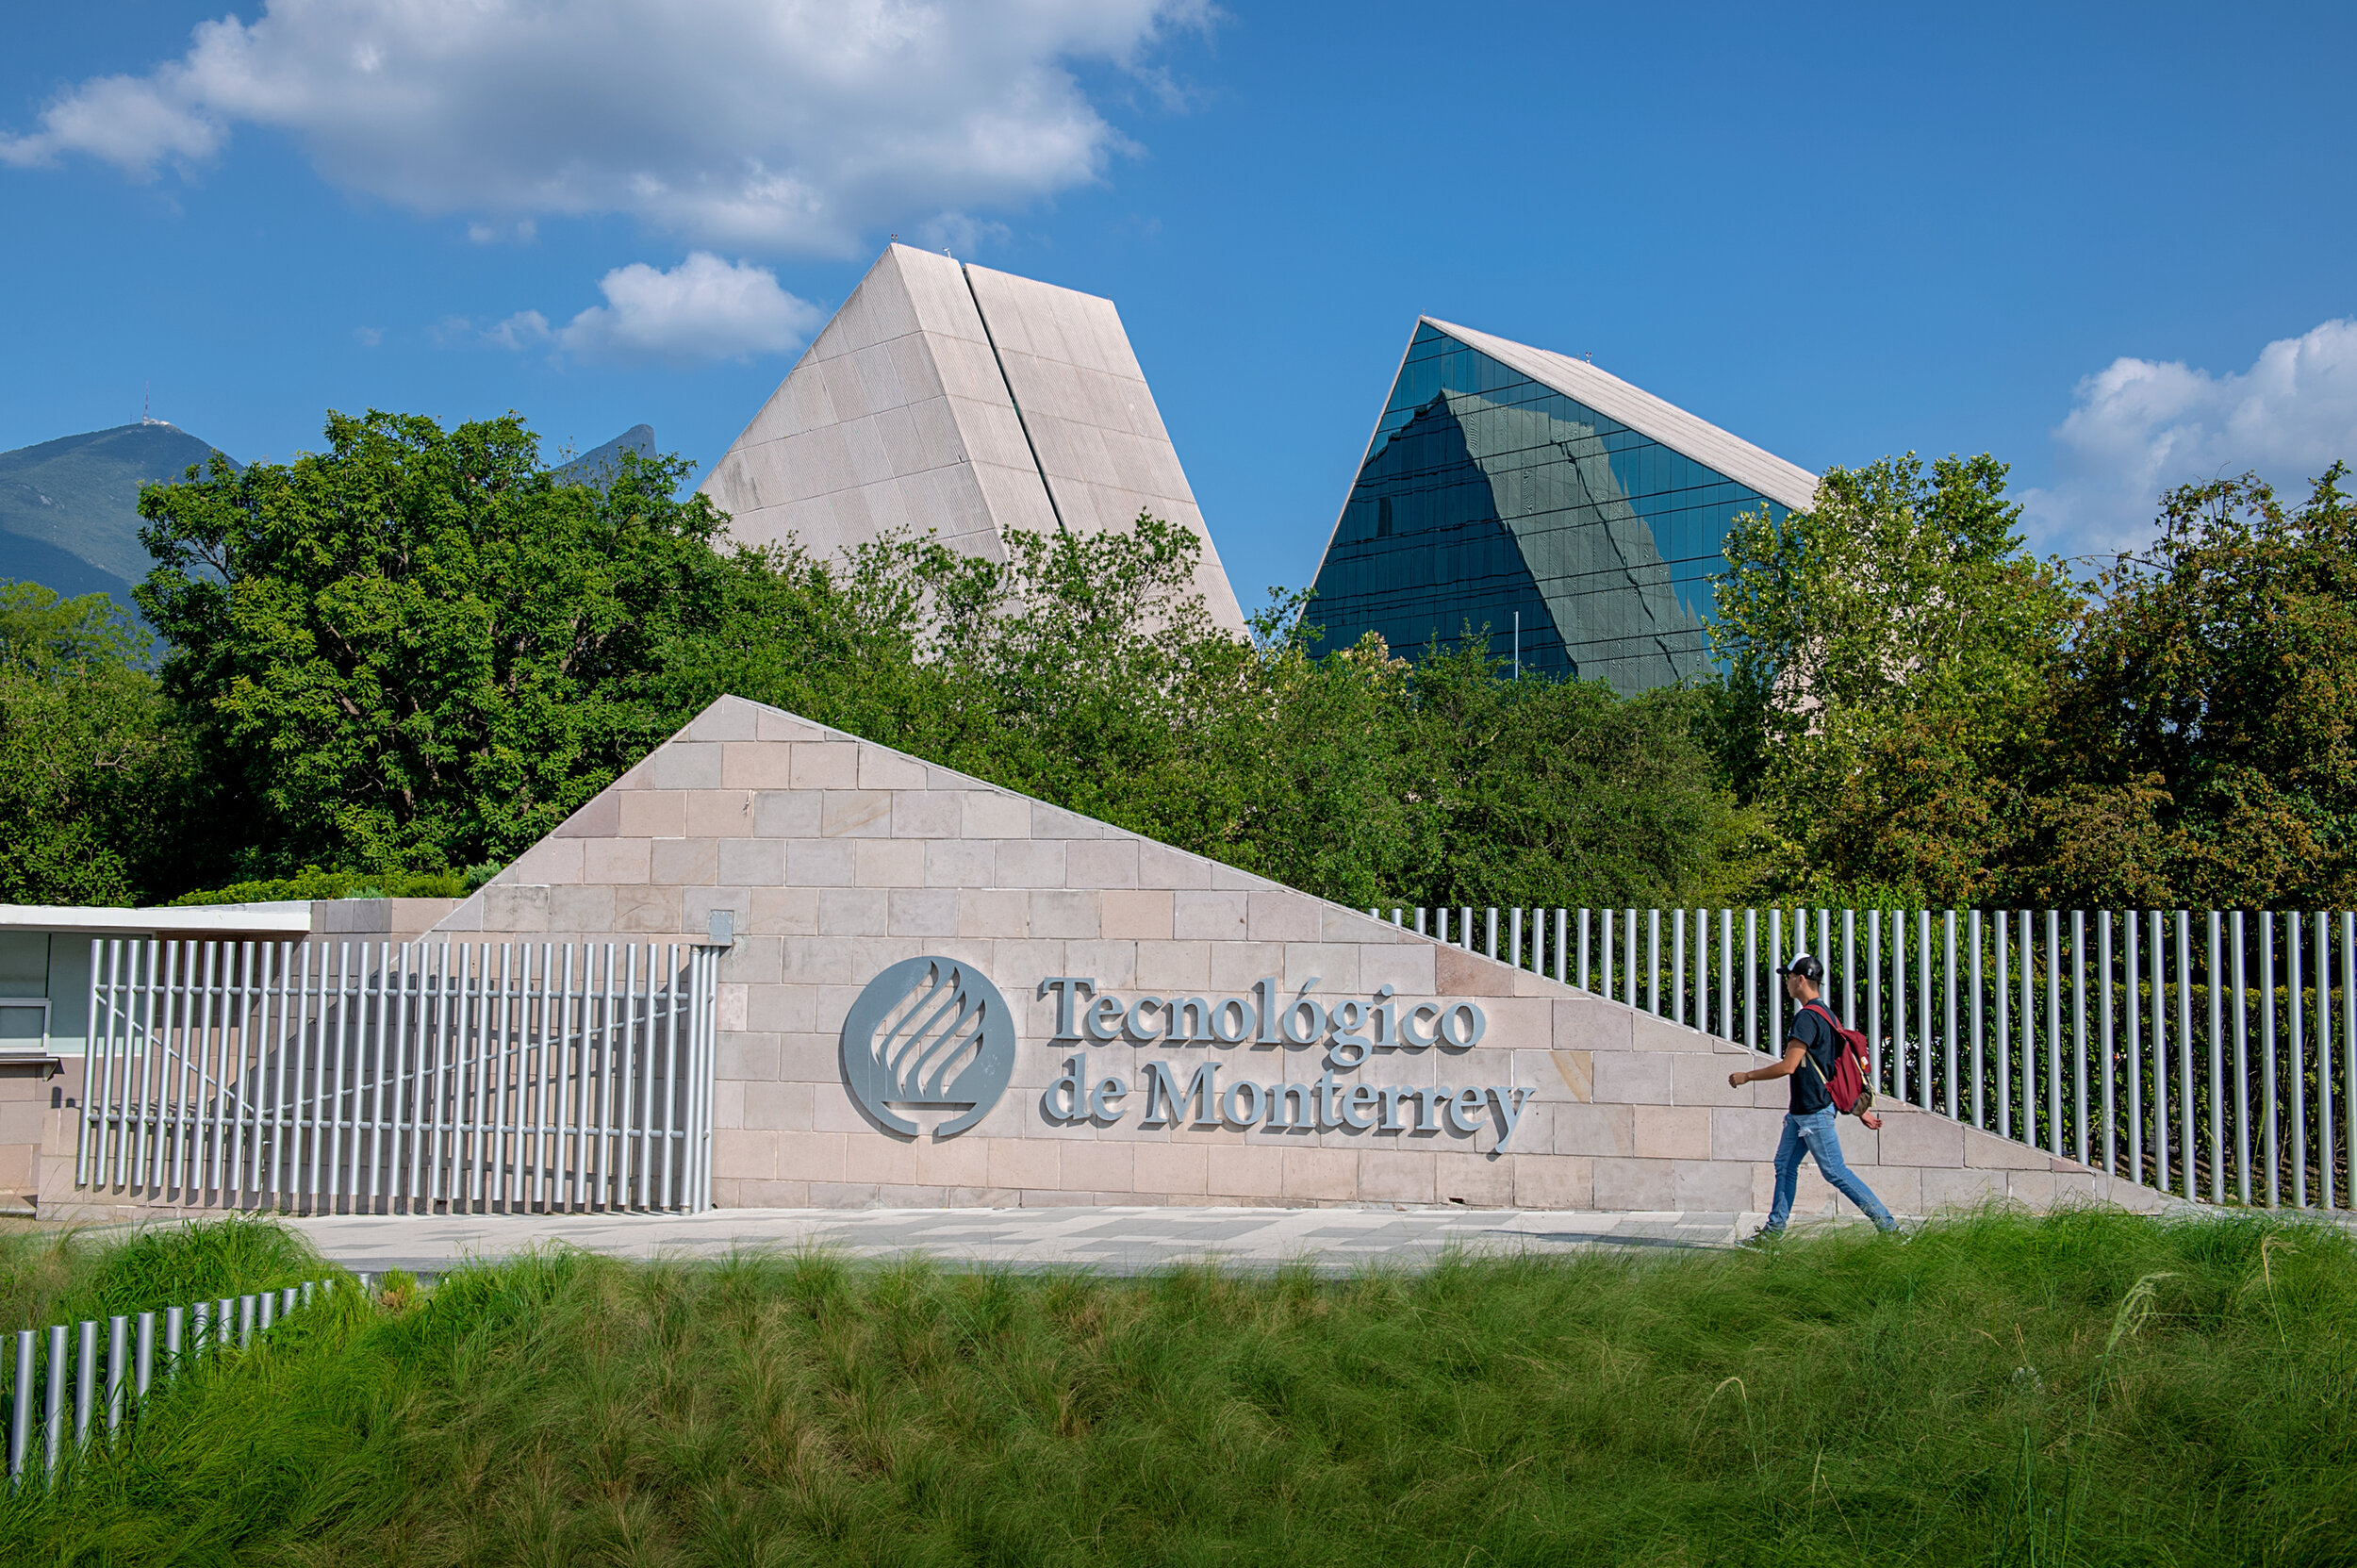 Tecnológico de Monterrey ranks second in employability in Latin America and number 40 worldwide. -